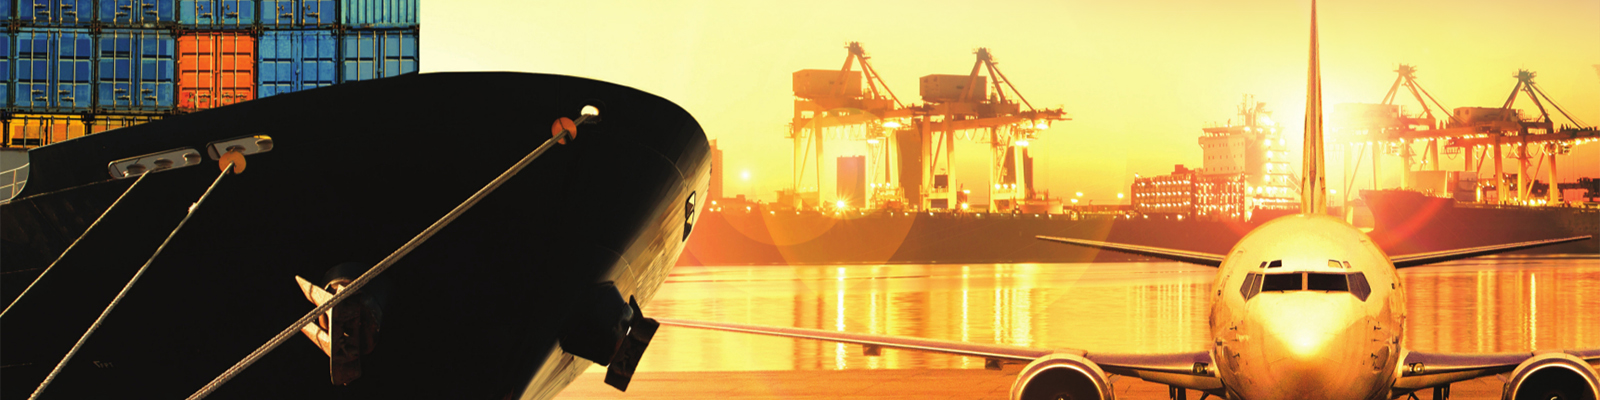 Freight forwarding and freight management